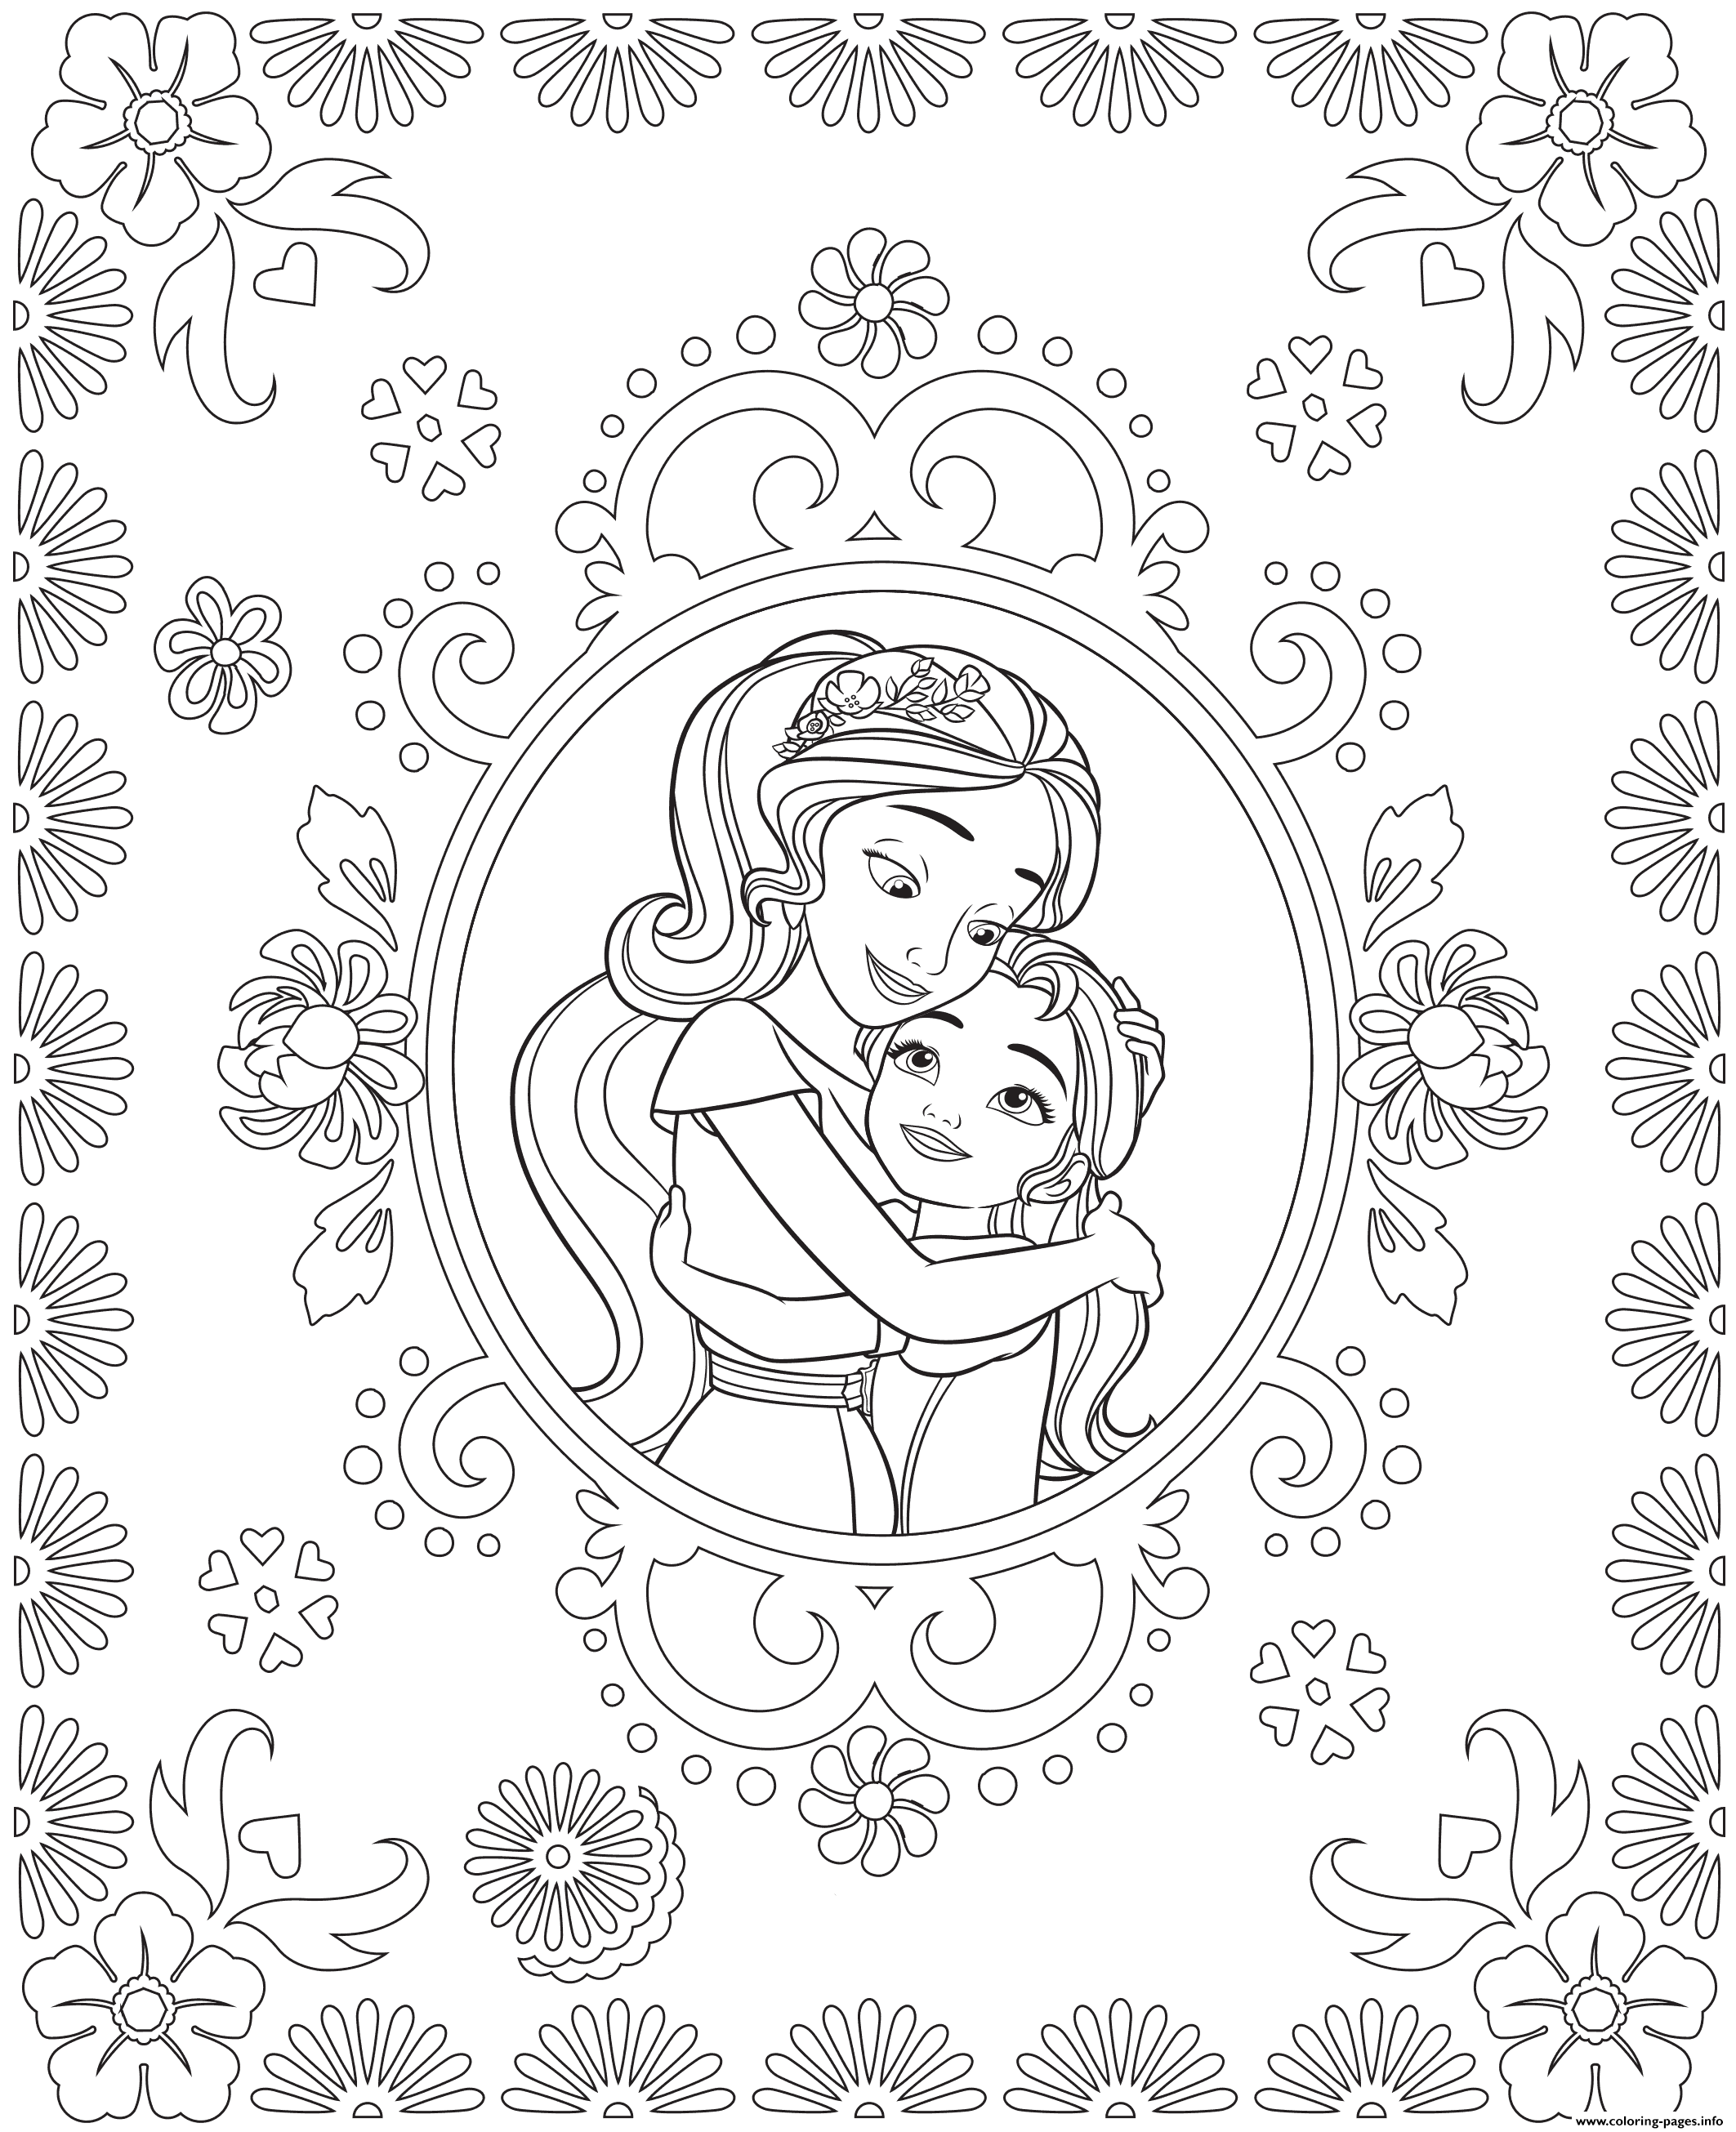 Disney princess birthday coloring pages - Print Princess Elena Of Avalor And Sister Isabel Colouring Page Coloring Pages